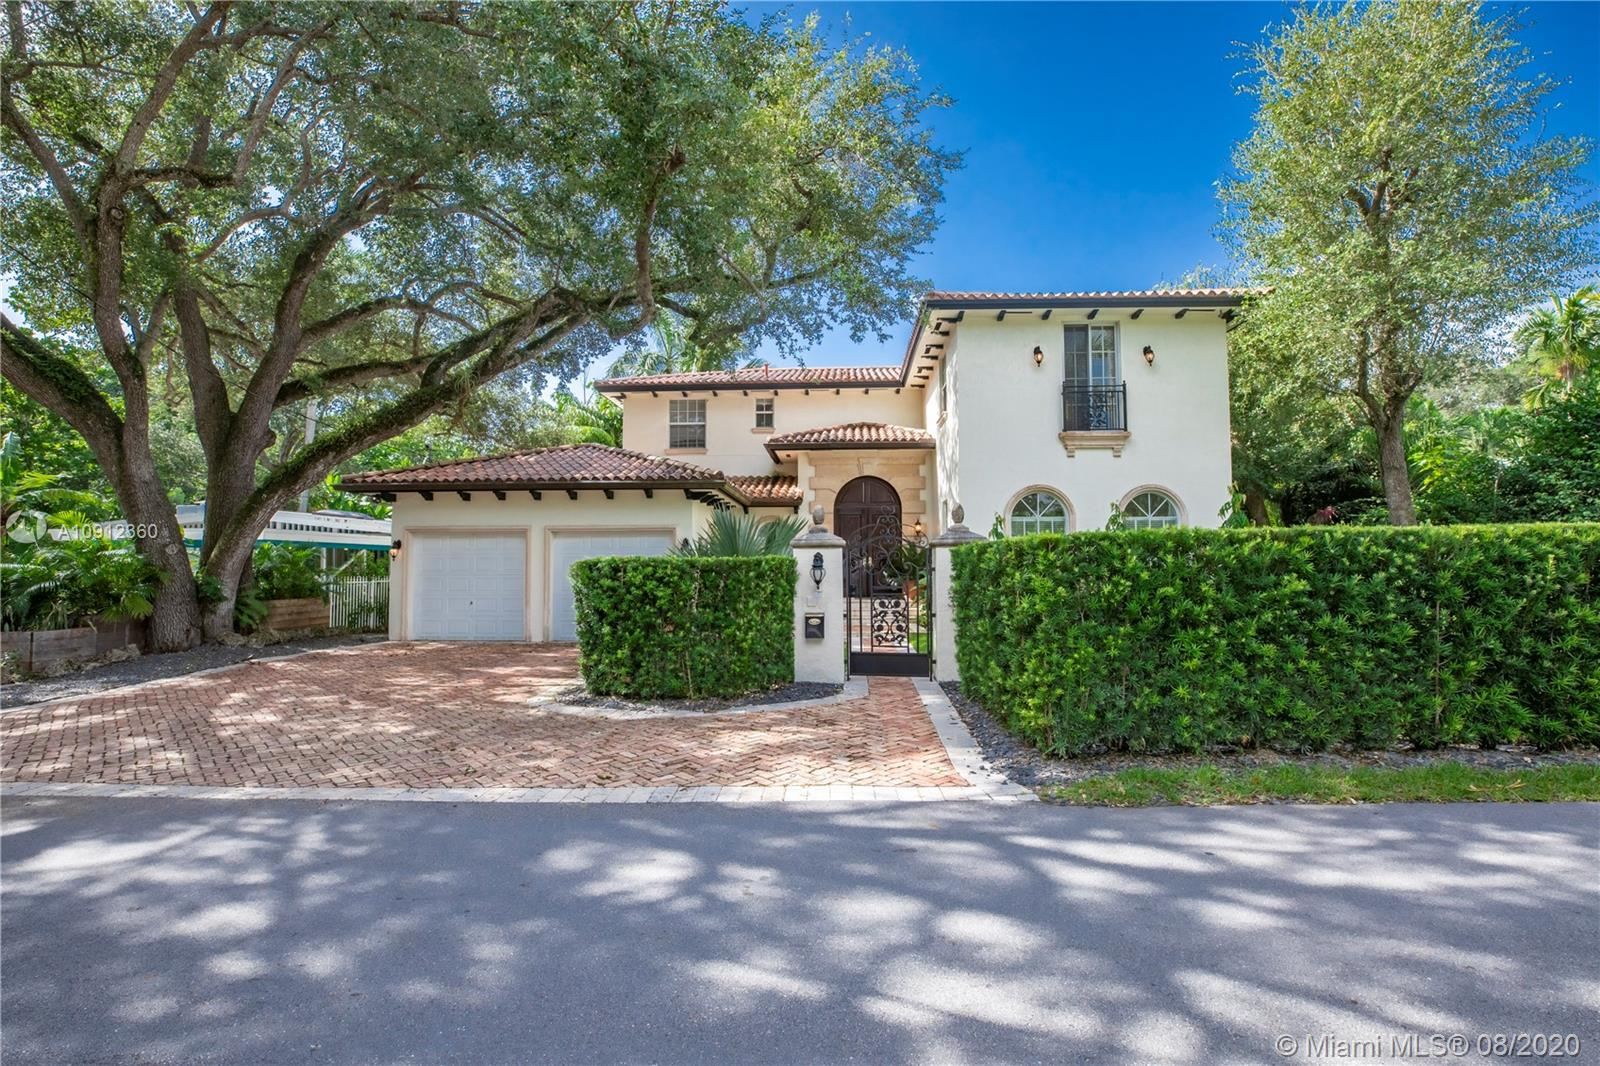 "Italian grandeur reminiscent of a sunny Tuscan villa sits on large lot in South Coconut Grove. Loquat is a favorite quintessential tree lined Grove street that is central and close to all your favorite spots. Exquisitely tasteful 6 bed/5.5 bath open plan ""pumps up the volume"" w/ dramatic high ceilings and coffered detailing. Art collectors will love the spacious walls! Upstairs has master w/ large balcony plus 3 bedrooms all w/ en suite baths and WICs. Downstairs has two additional bedrooms. Wide open living spaces allow for beautiful and comfortable natural light that grace the home all day long. Backyard boasts covered patio, large pool,and lots of green space. 2 Car Gar. LA SF is 4635 per appraiser. Effective age of home is from 2005 w/ small portion downstairs originally built in 1940."